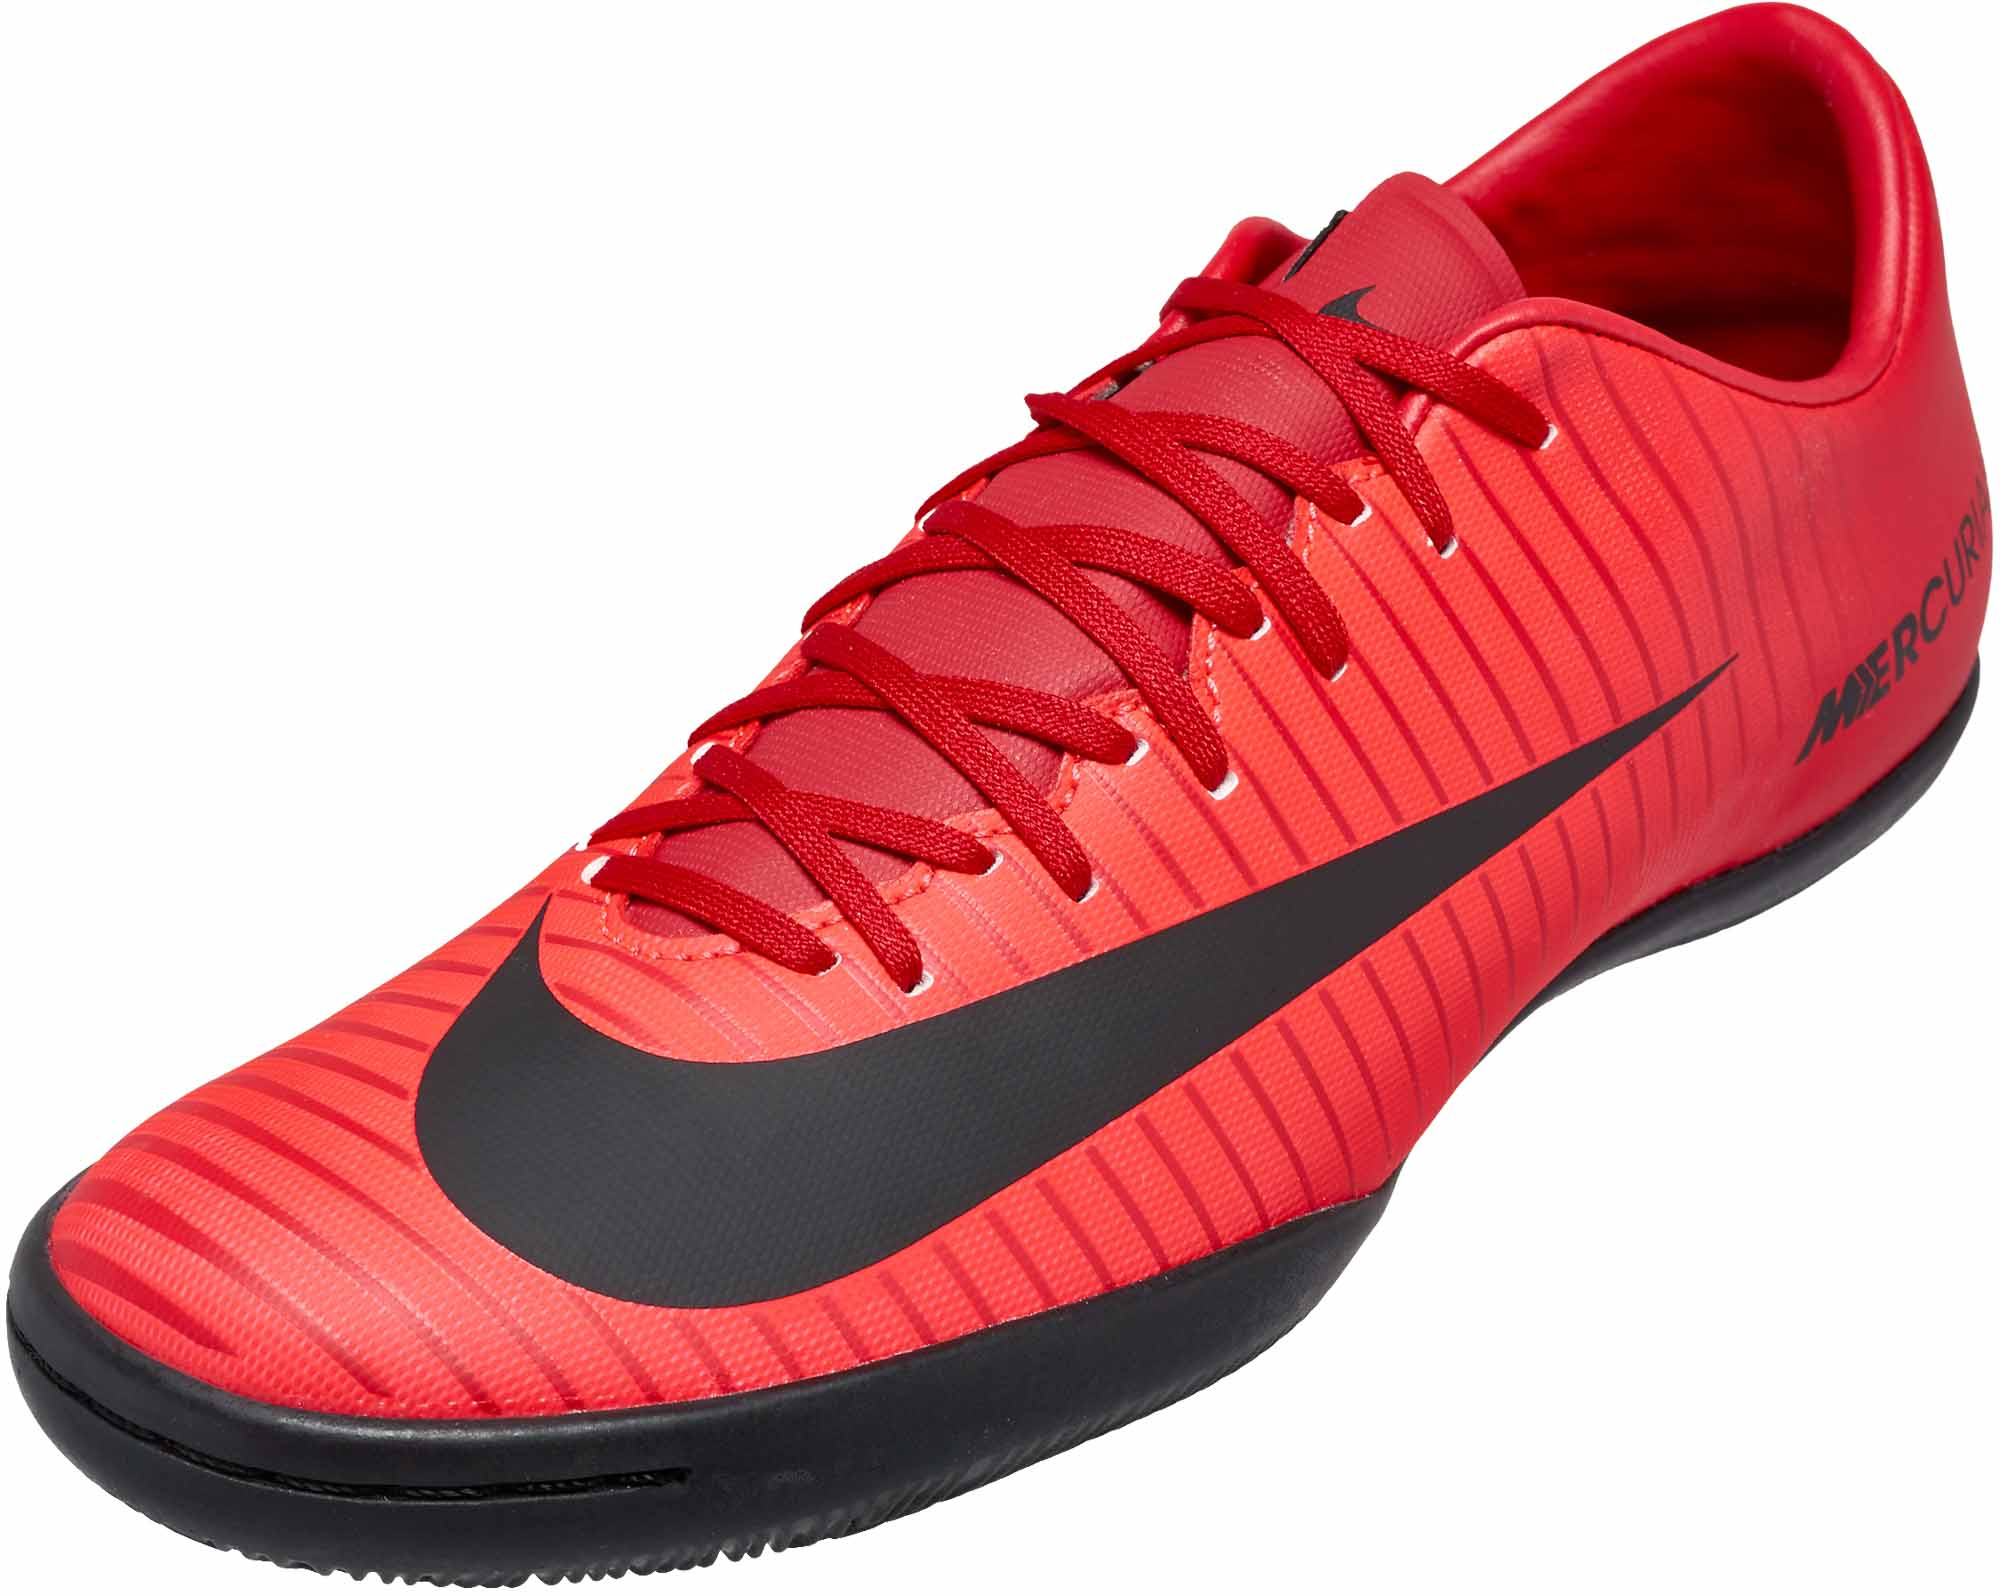 351b984f98f Nike MercurialX Victory VI IC – University Red Black